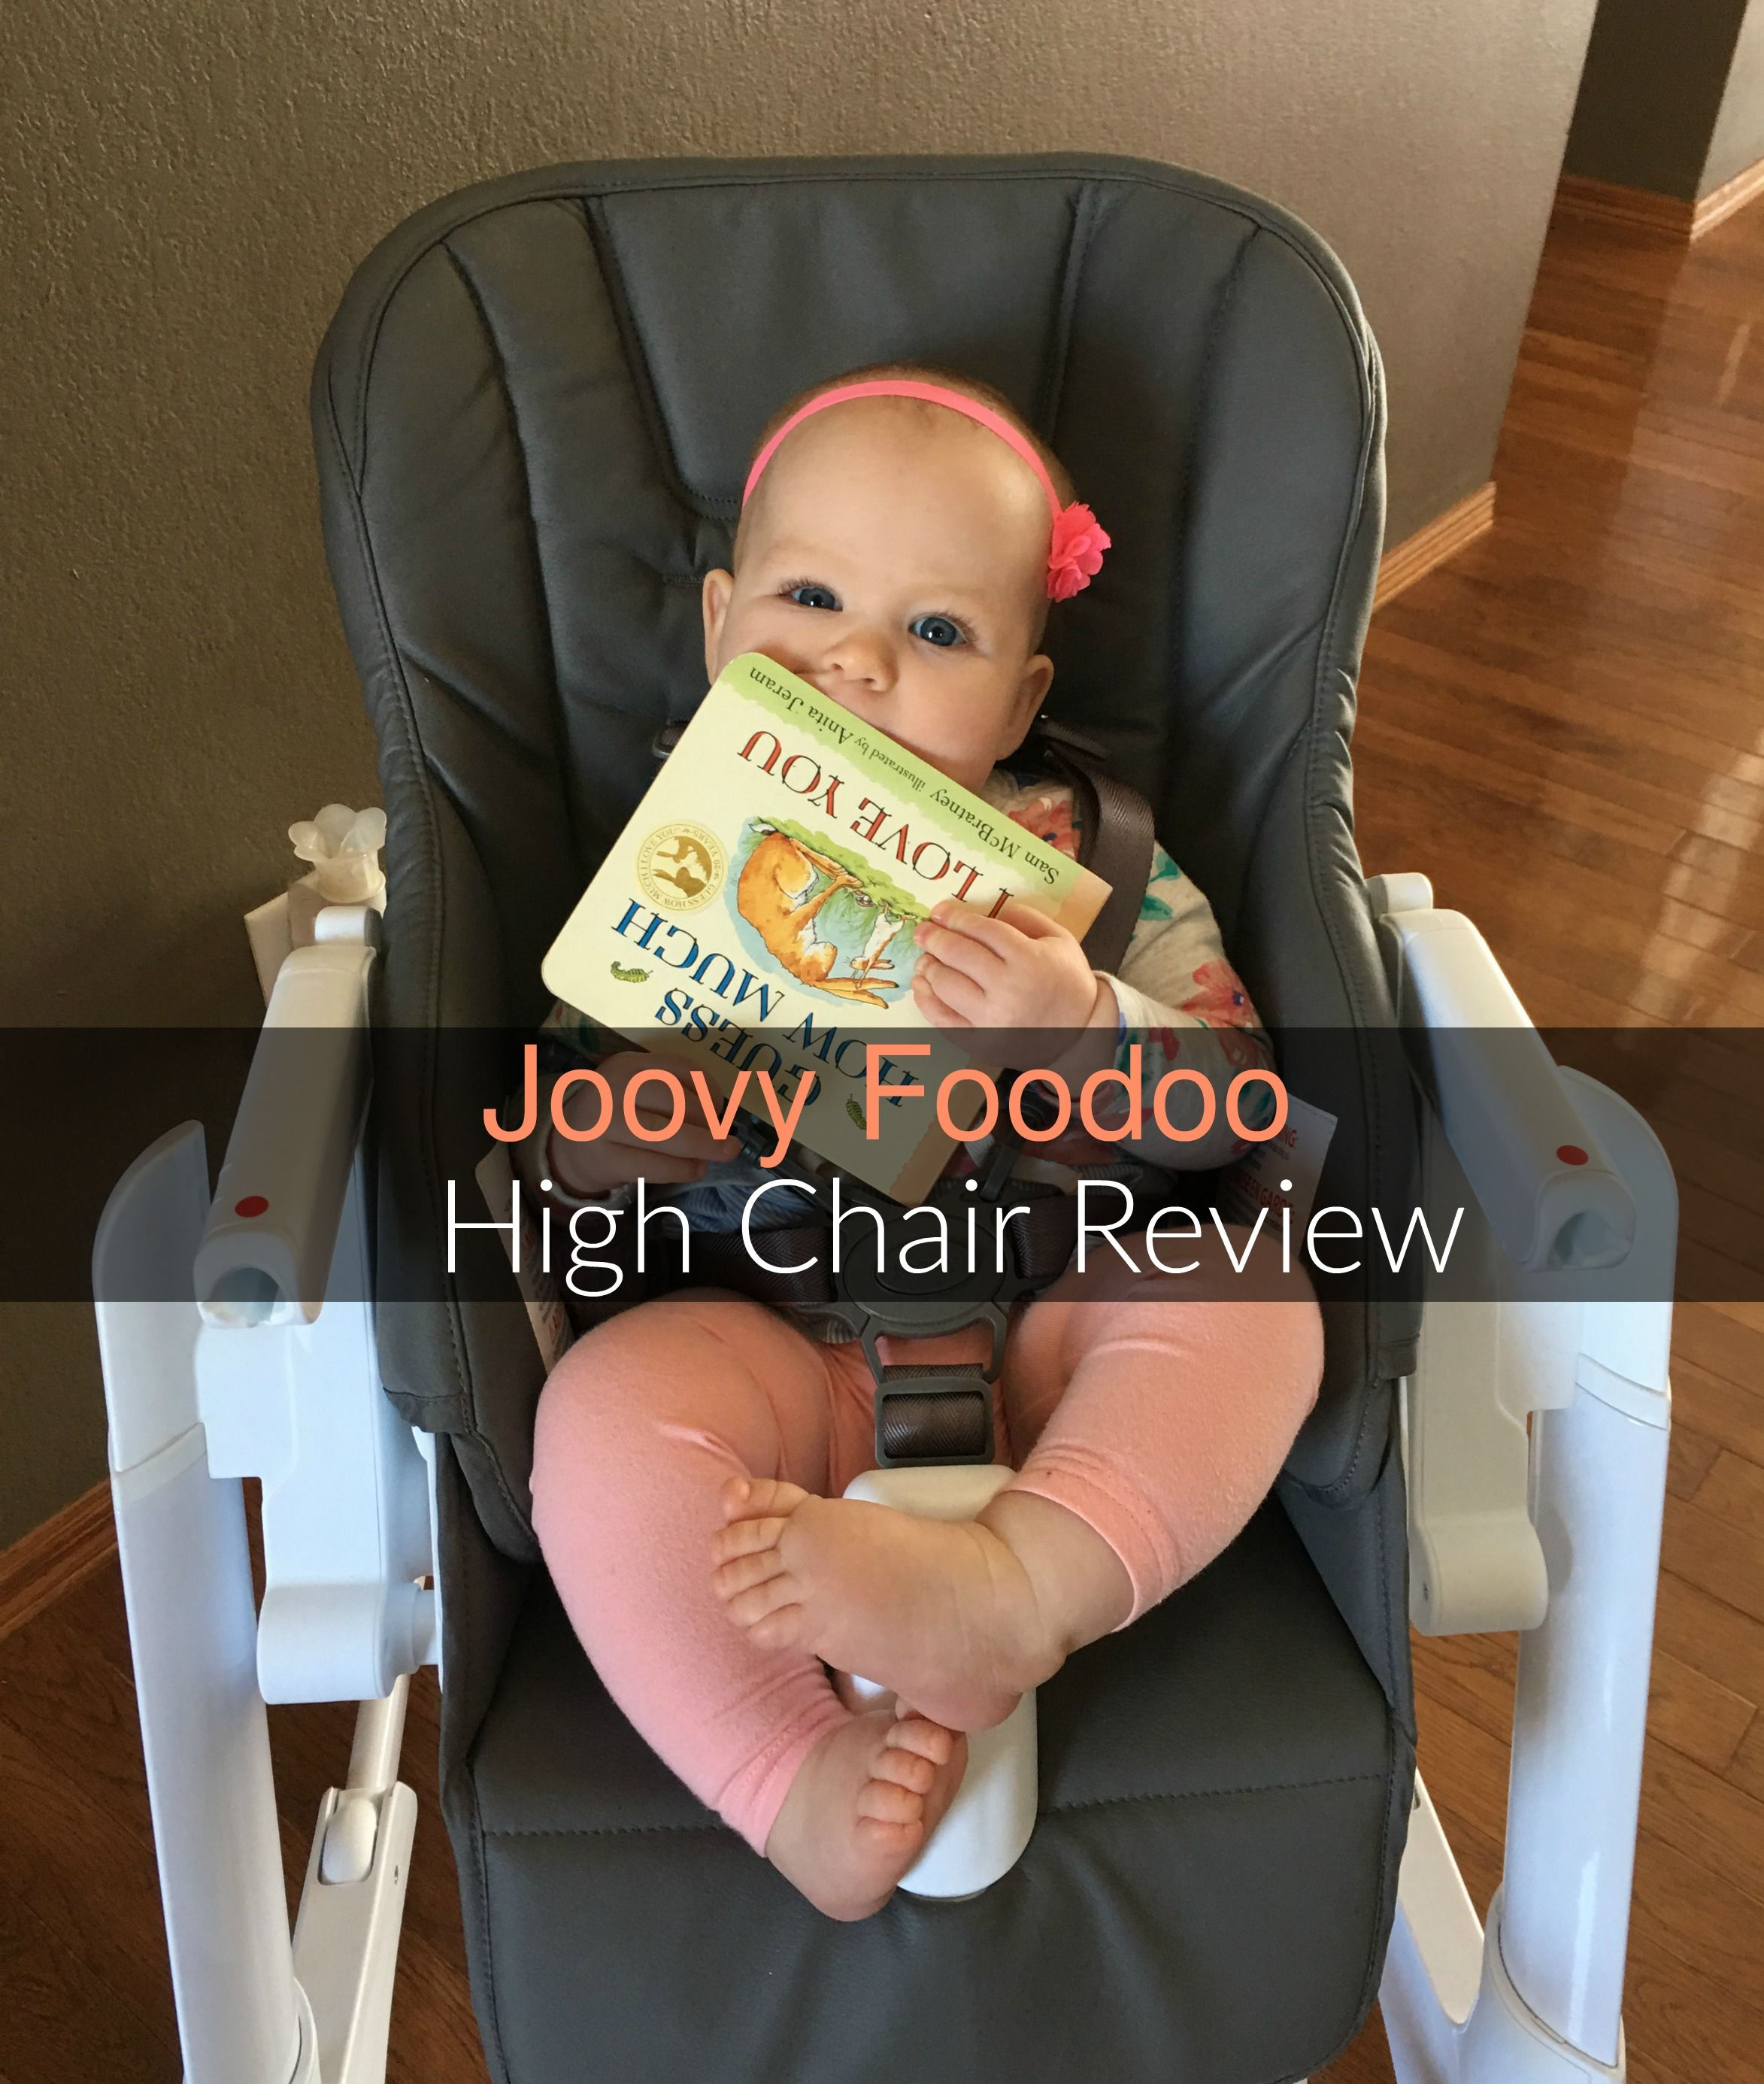 Joovy Foodoo High Chair Review Chair Baby Car Seats Gifts For Kids